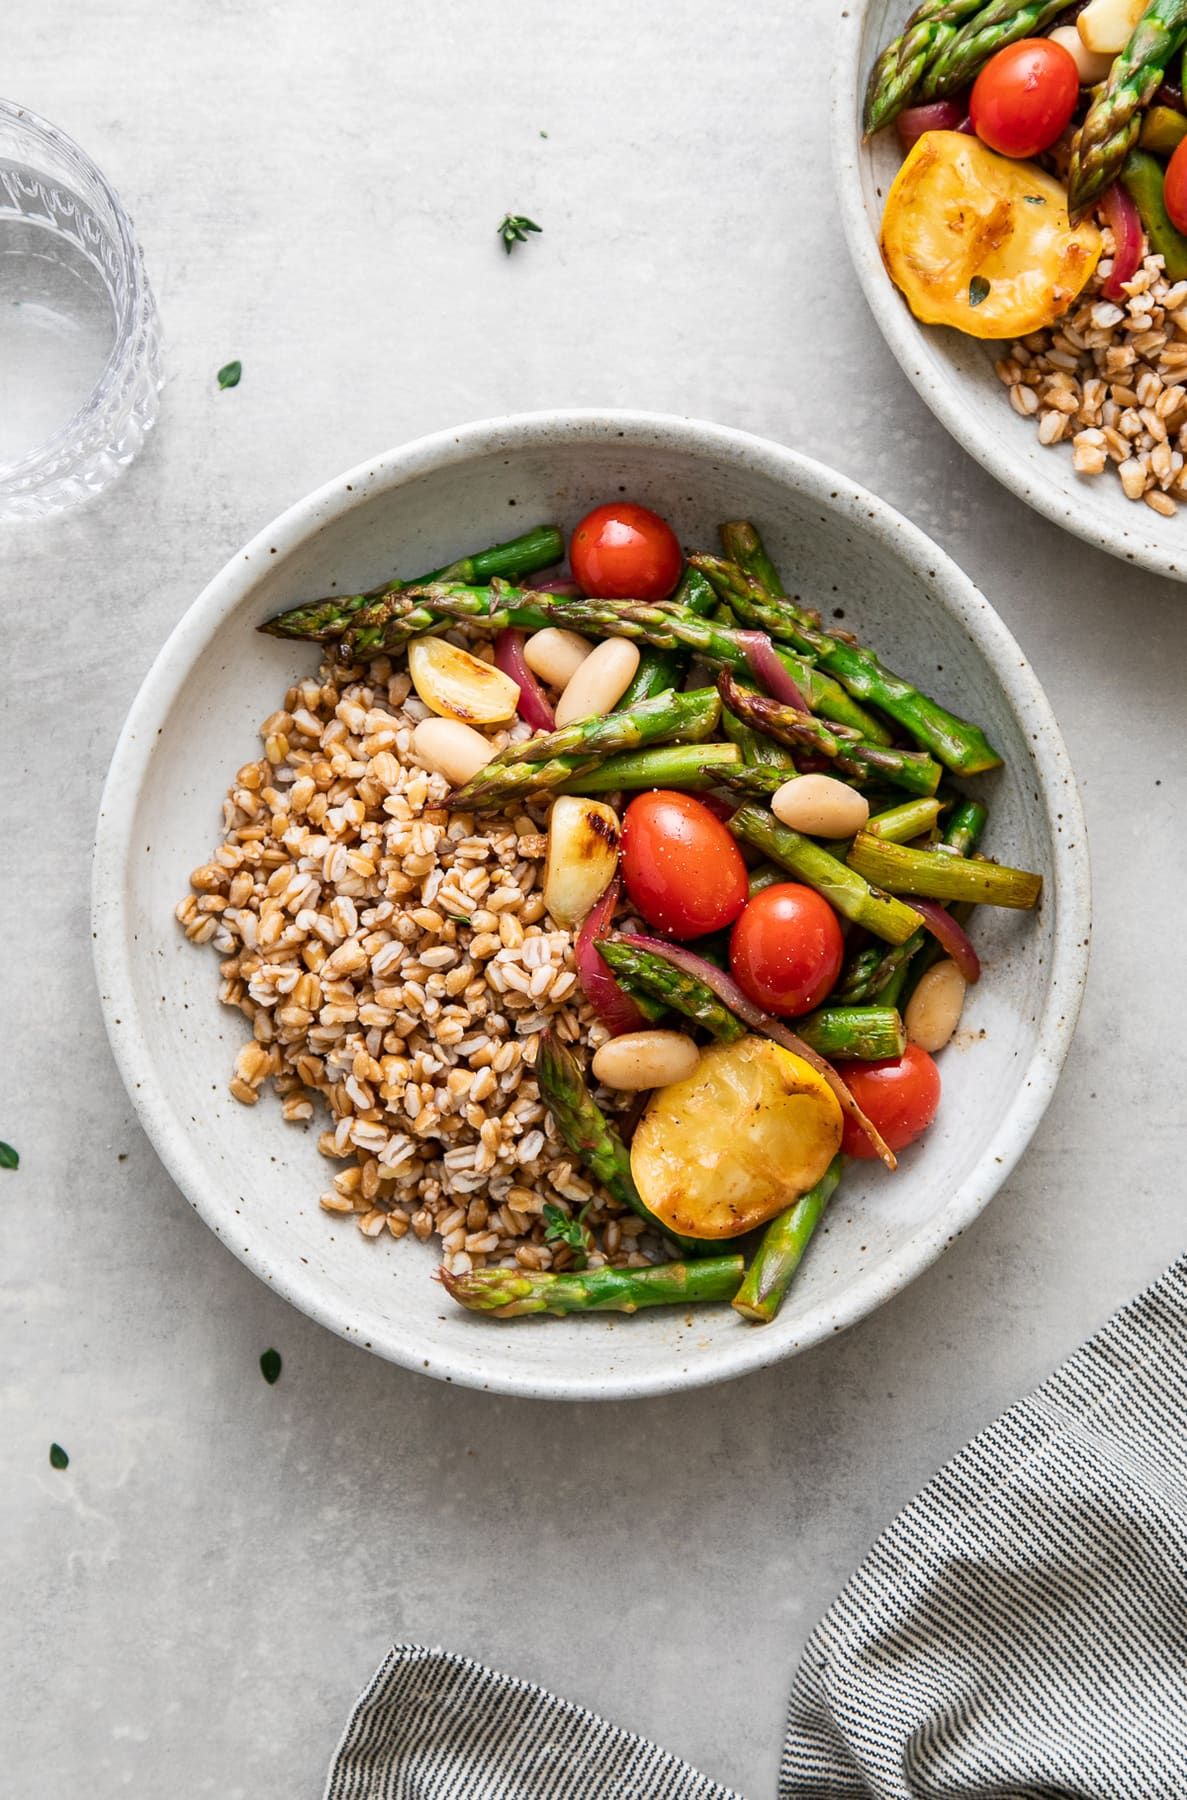 top down view of a bowl with serving of skillet asparagus and tomato medley with farro and items surrounding.